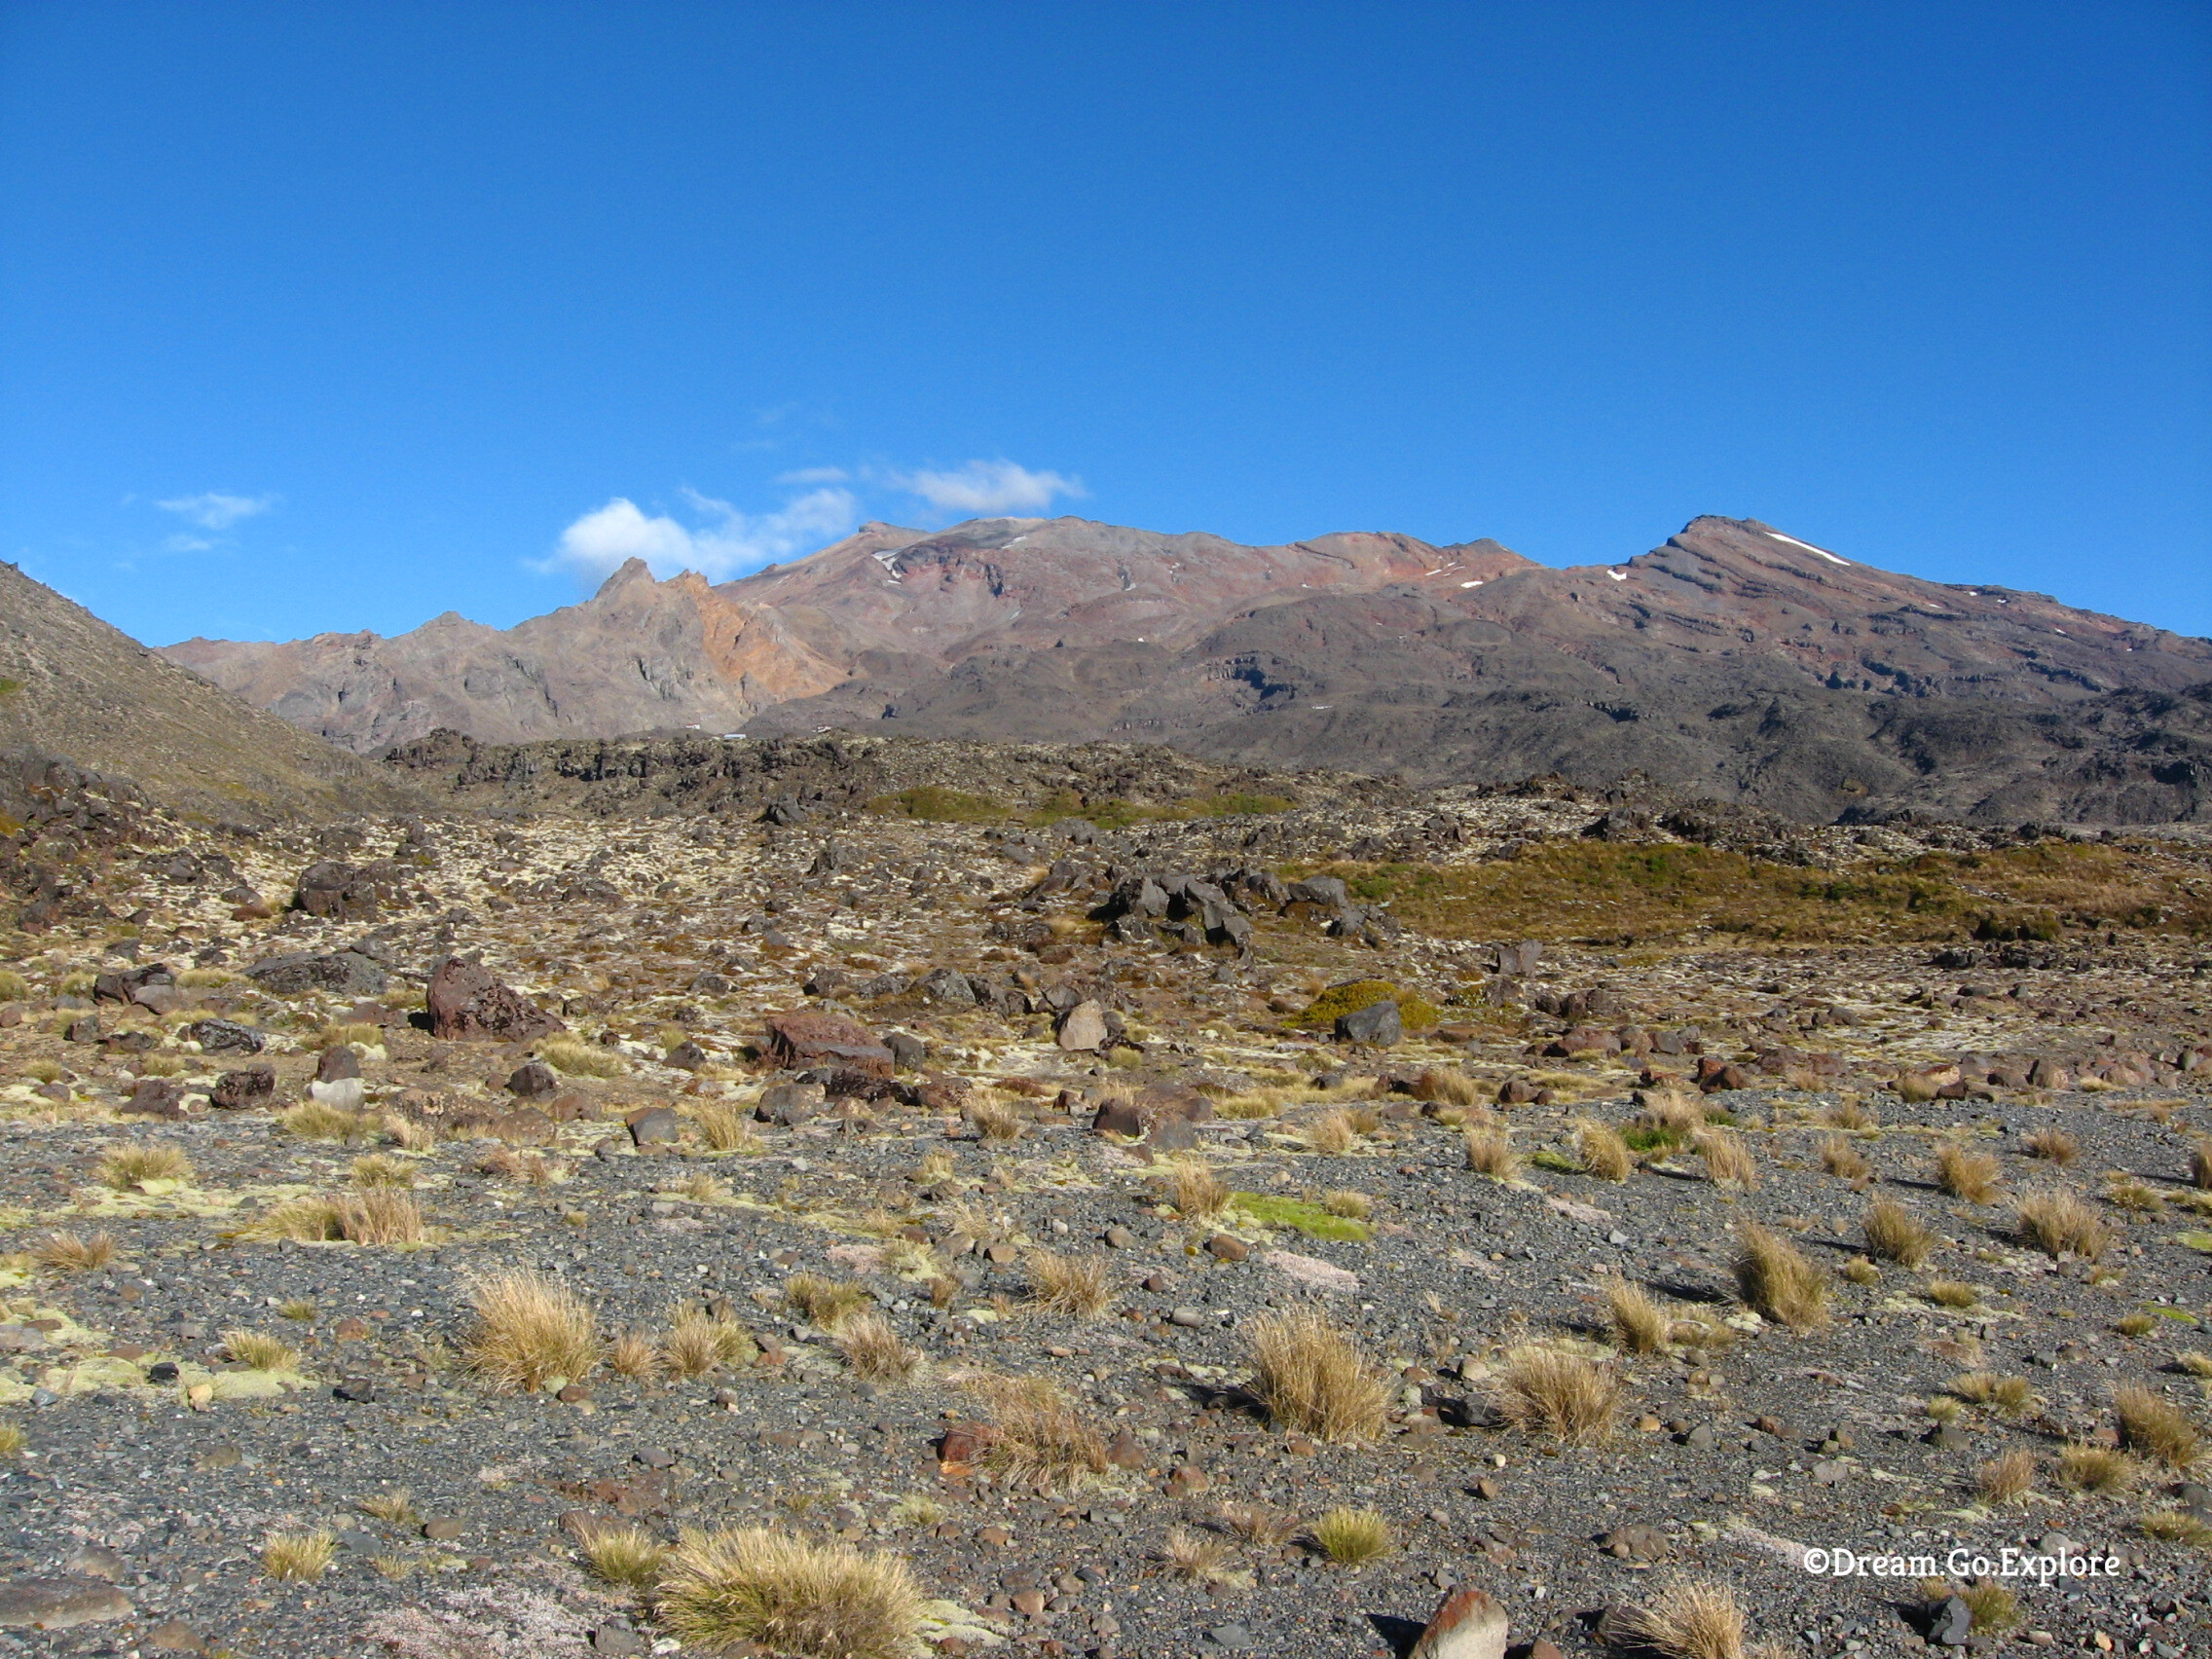 Hike to Dome Shelter (2672 meters) at Mount Ruapehu (New Zealand) – Wanderung zum Dome Shelter (2672 Meter) am Mount Ruapehu (Neuseeland)